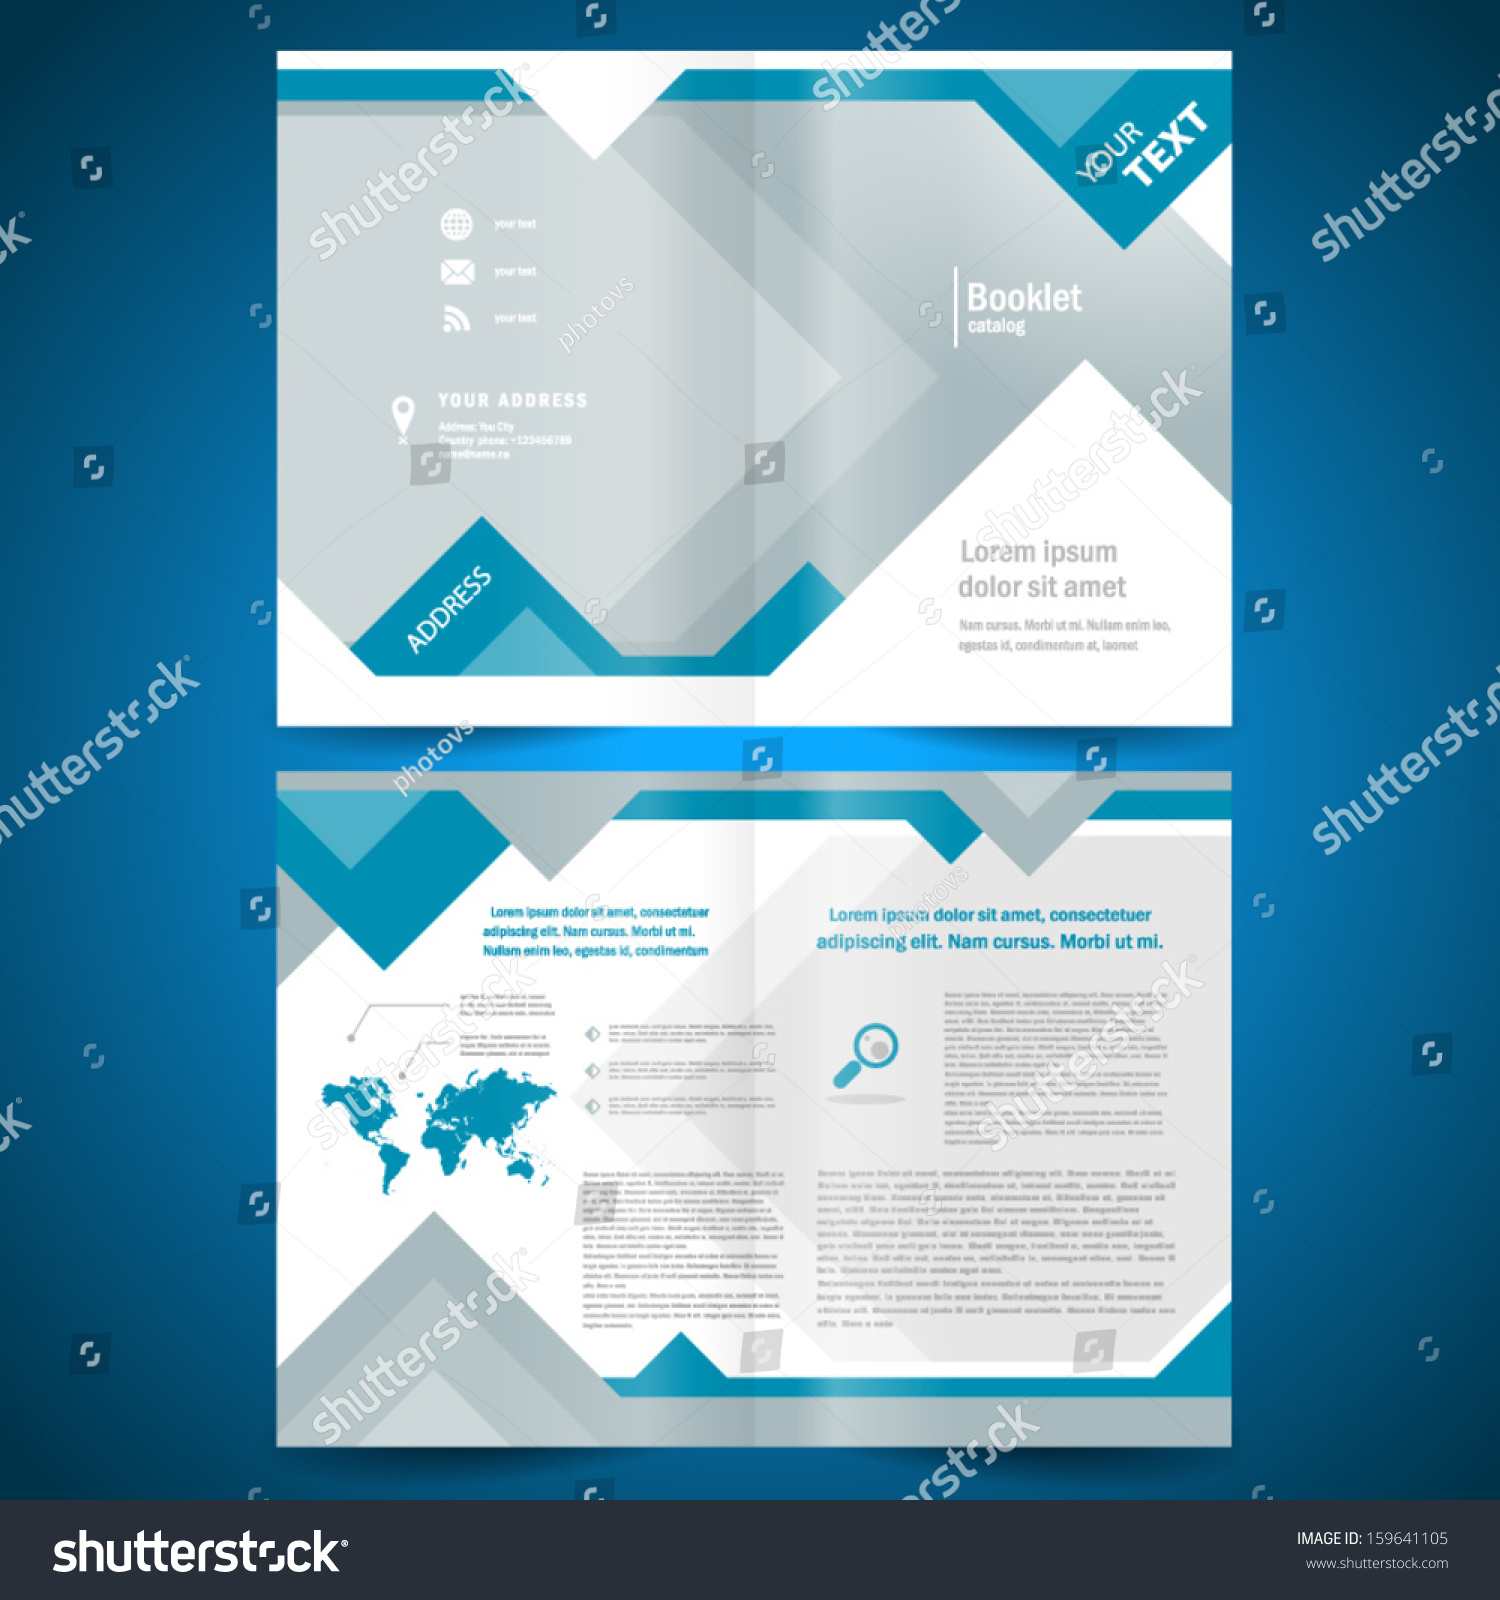 Booklet Template Design Catalog Brochure Folder Geometric Triangle Rhombus  Abstract Element Blue Color Background #159641105  Free Booklet Template